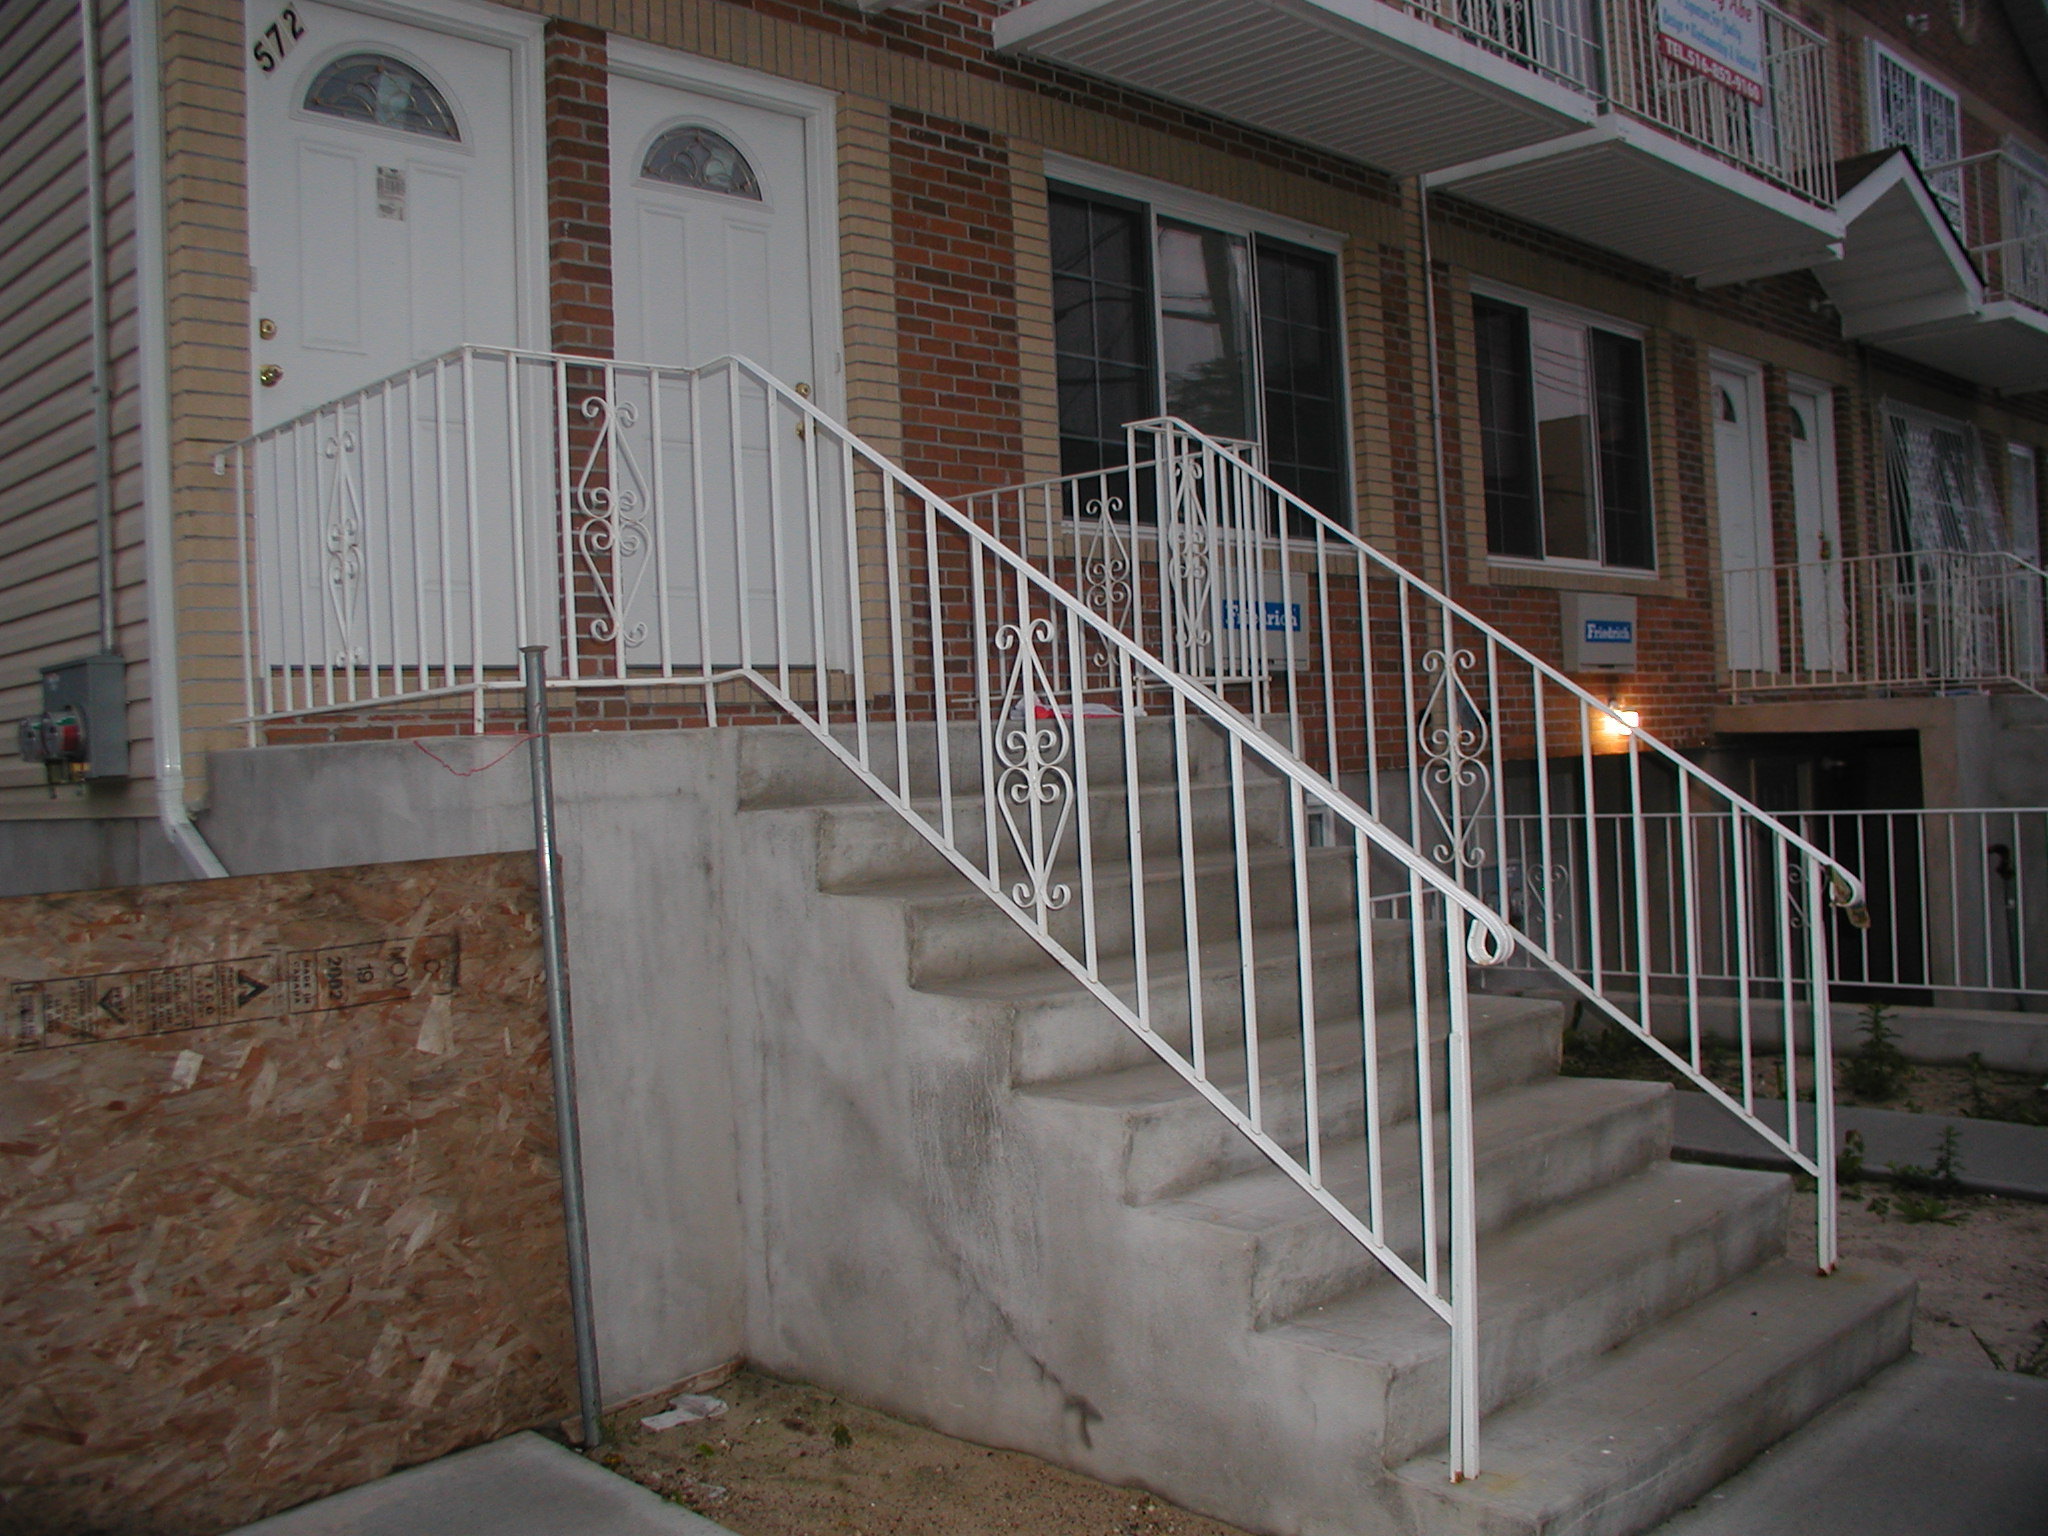 Steel Welded Economy Stair Railings With 189 Solid Pickets